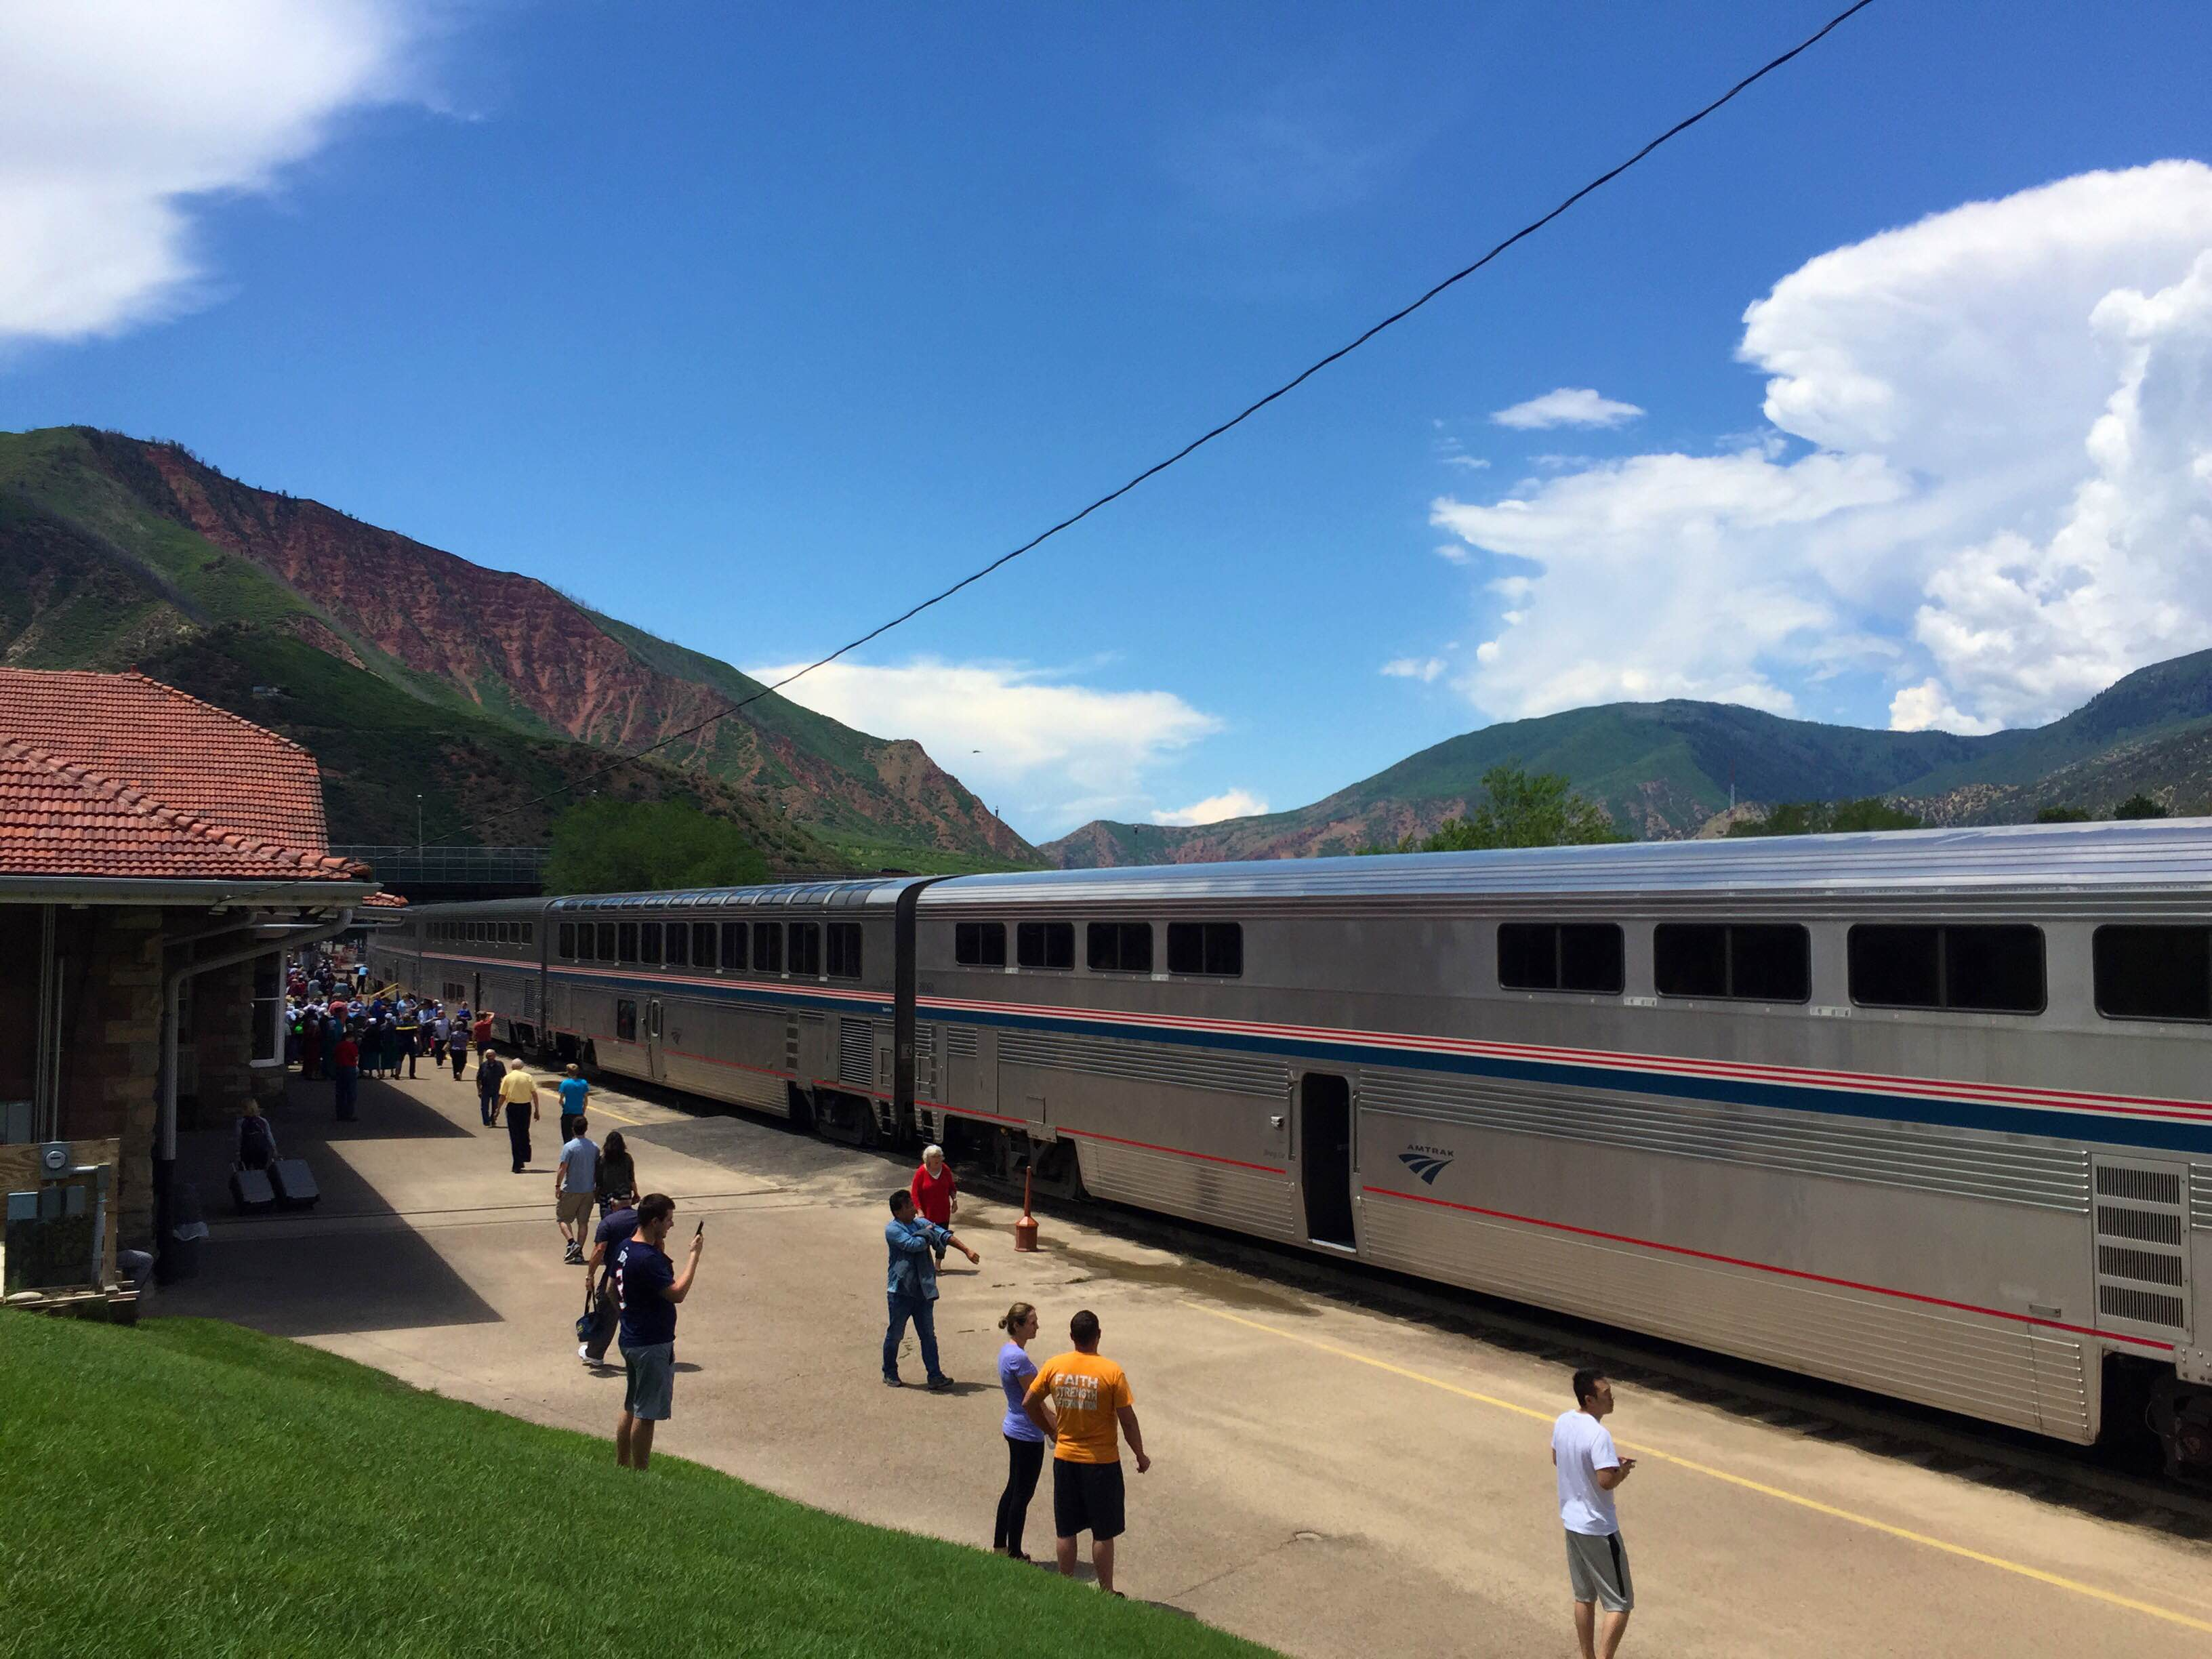 Amtrak Mooning Pictures review: amtrak california zephyr - chicago to emeryville